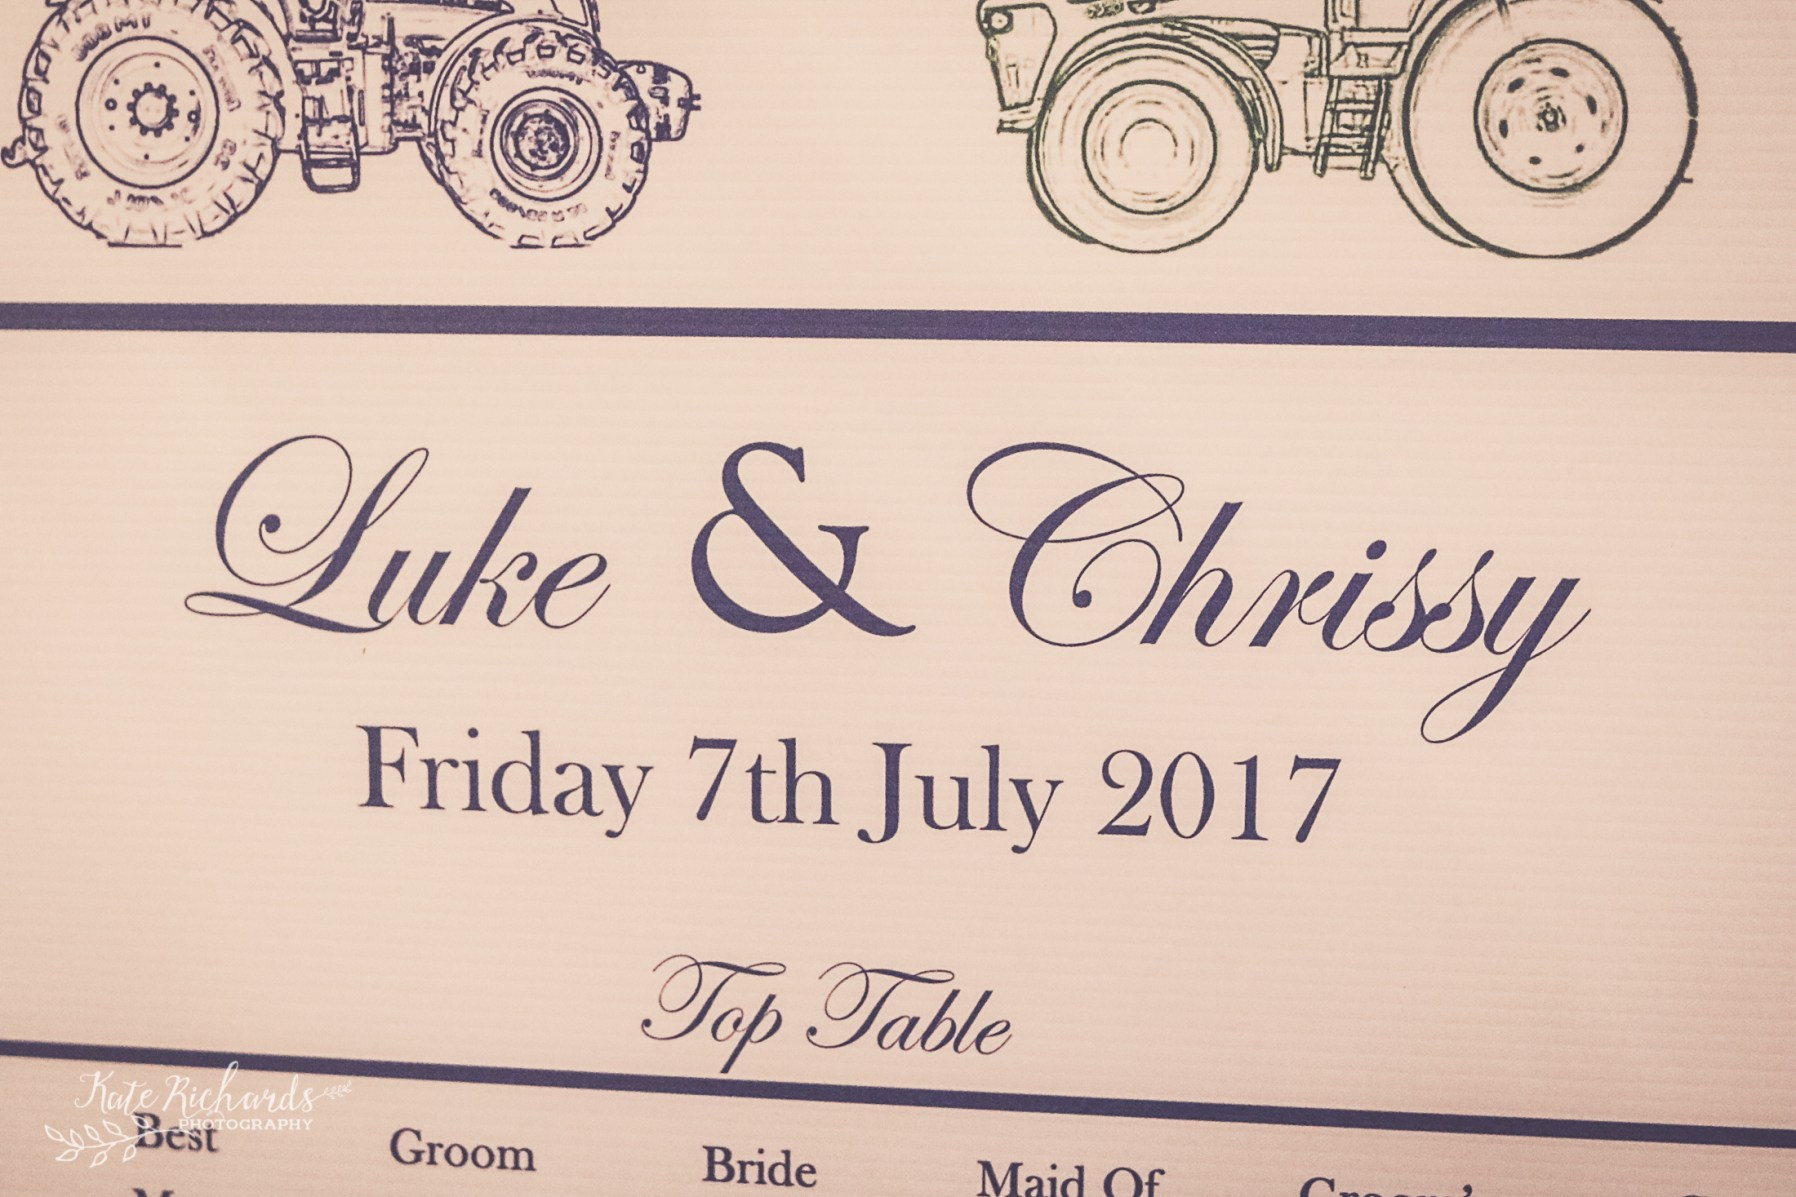 chrissy-luke-wed-web-828